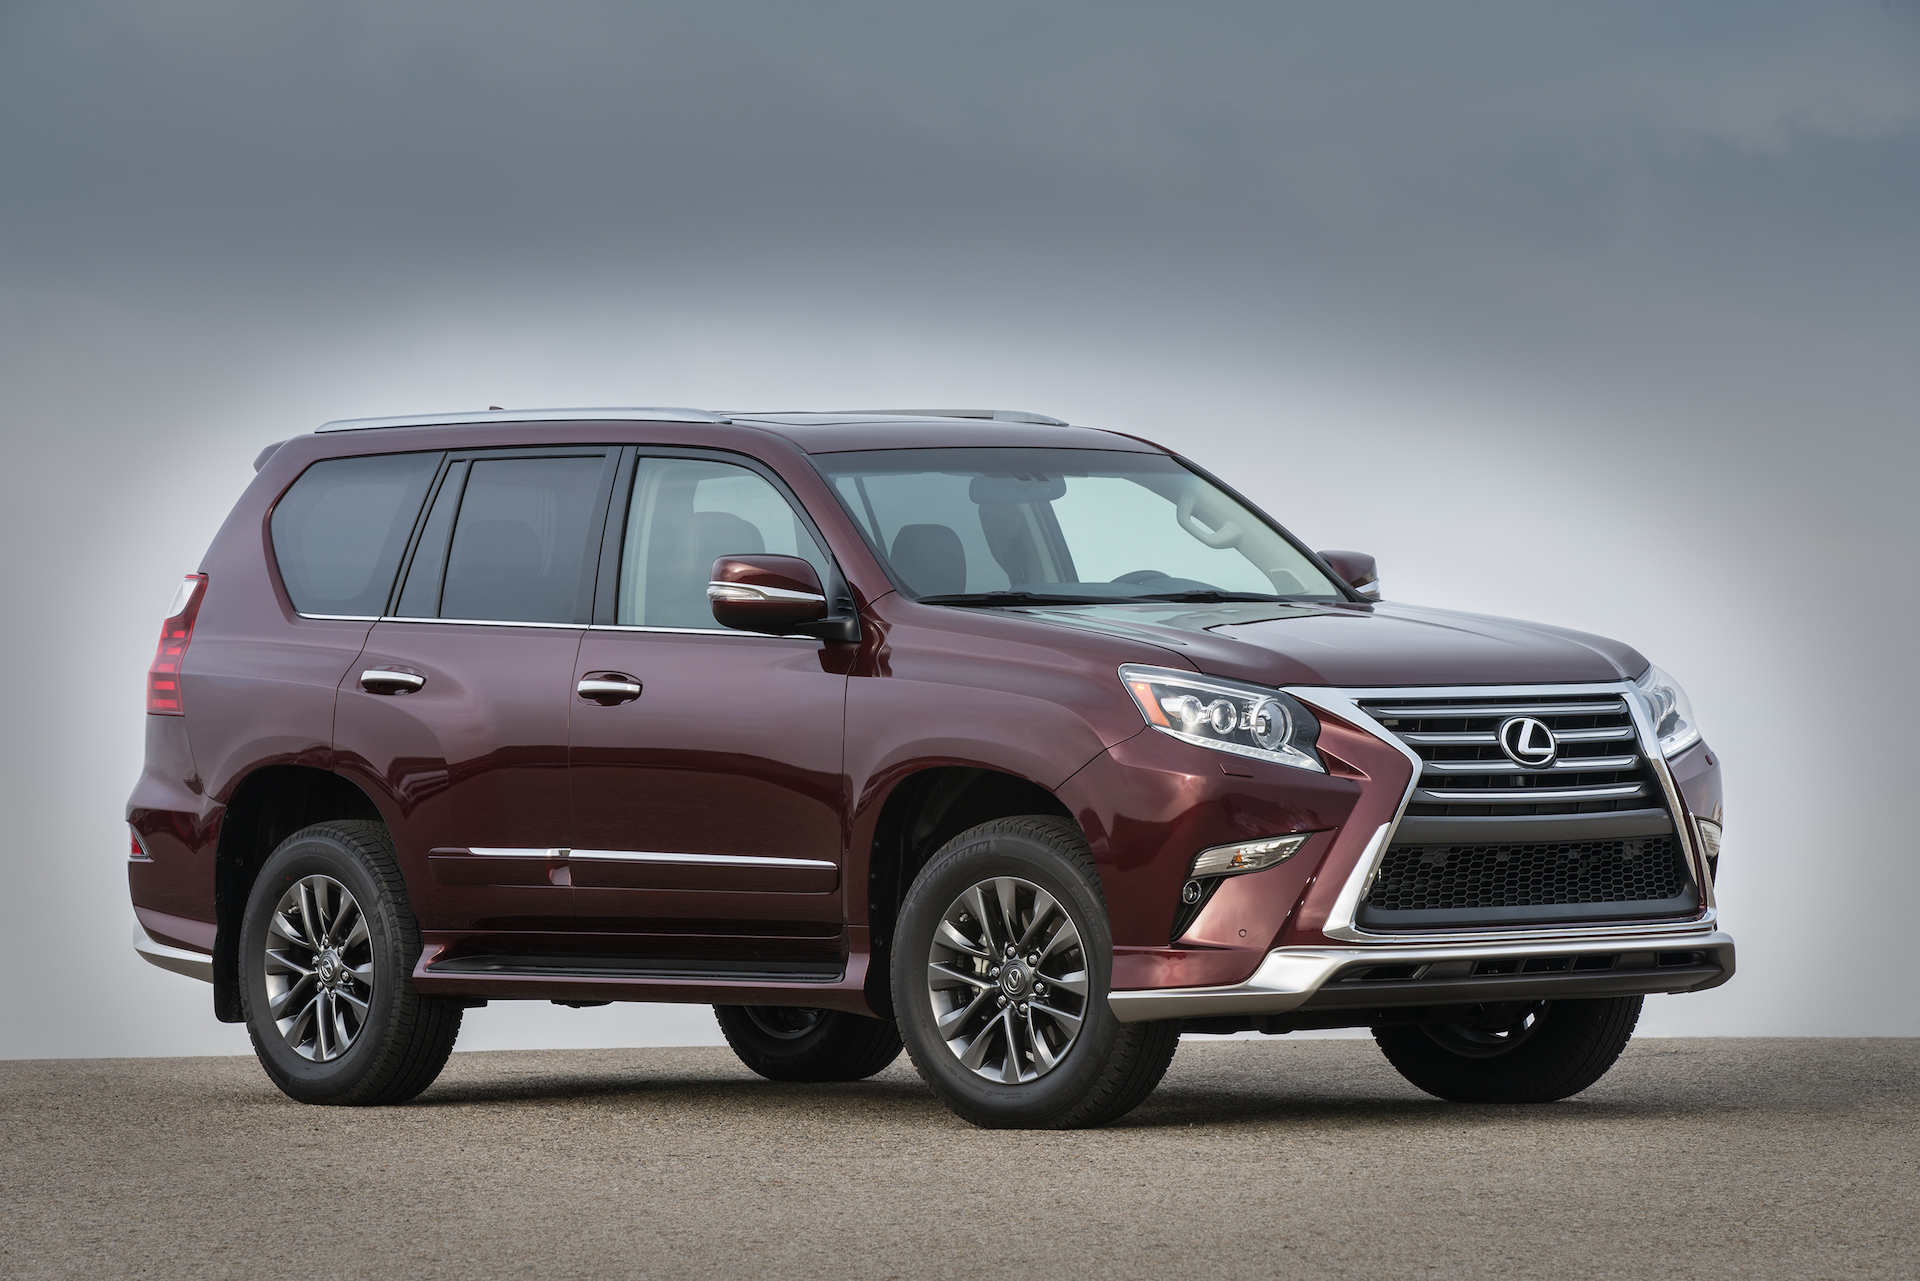 2018 Lexus Gx 460 Release Date, Redesign, Price, Review